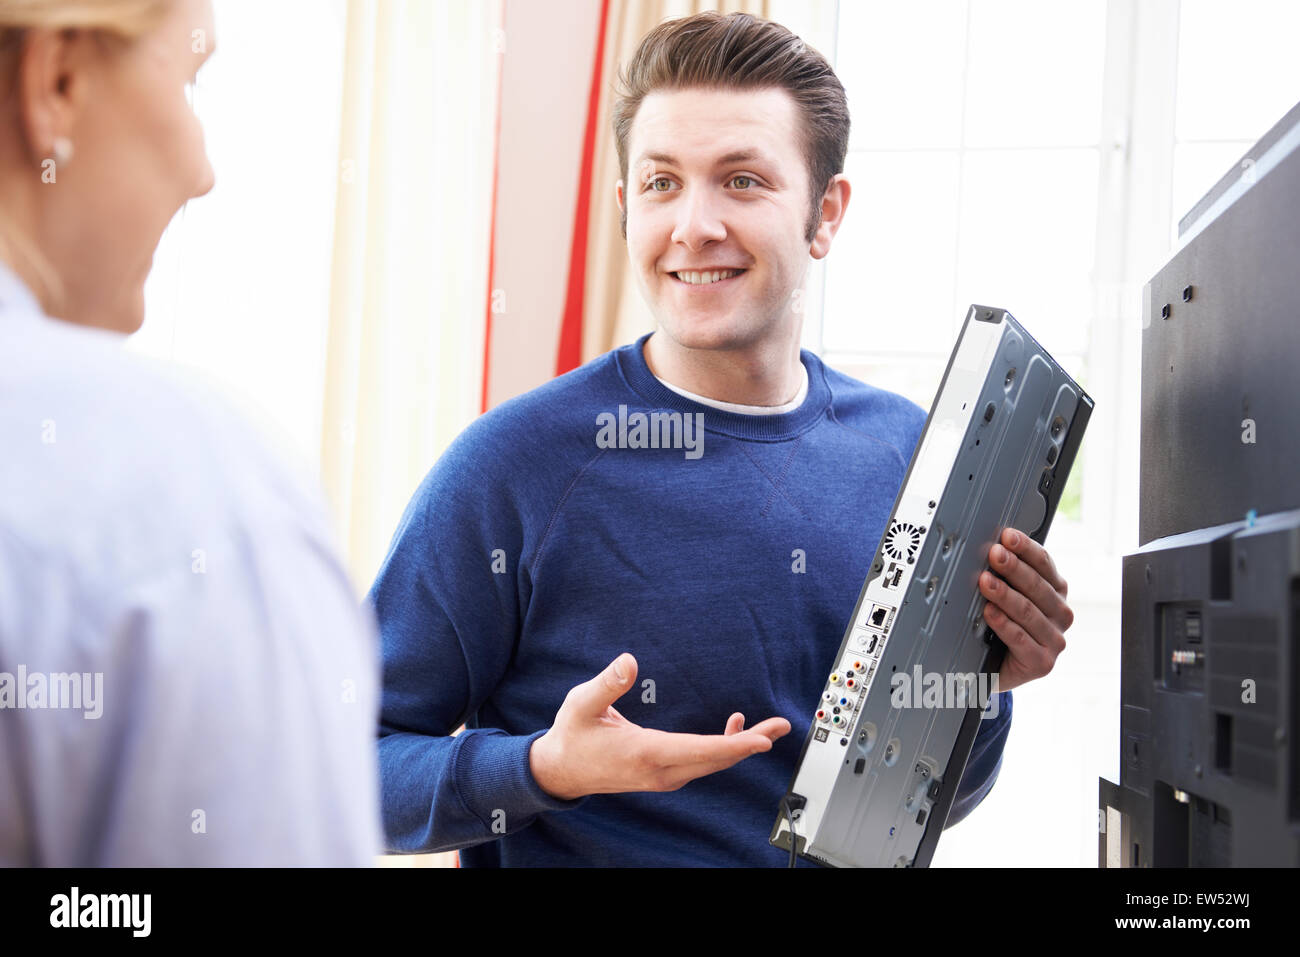 Engineer Giving Advice On Installing Digital TV Equipment - Stock Image